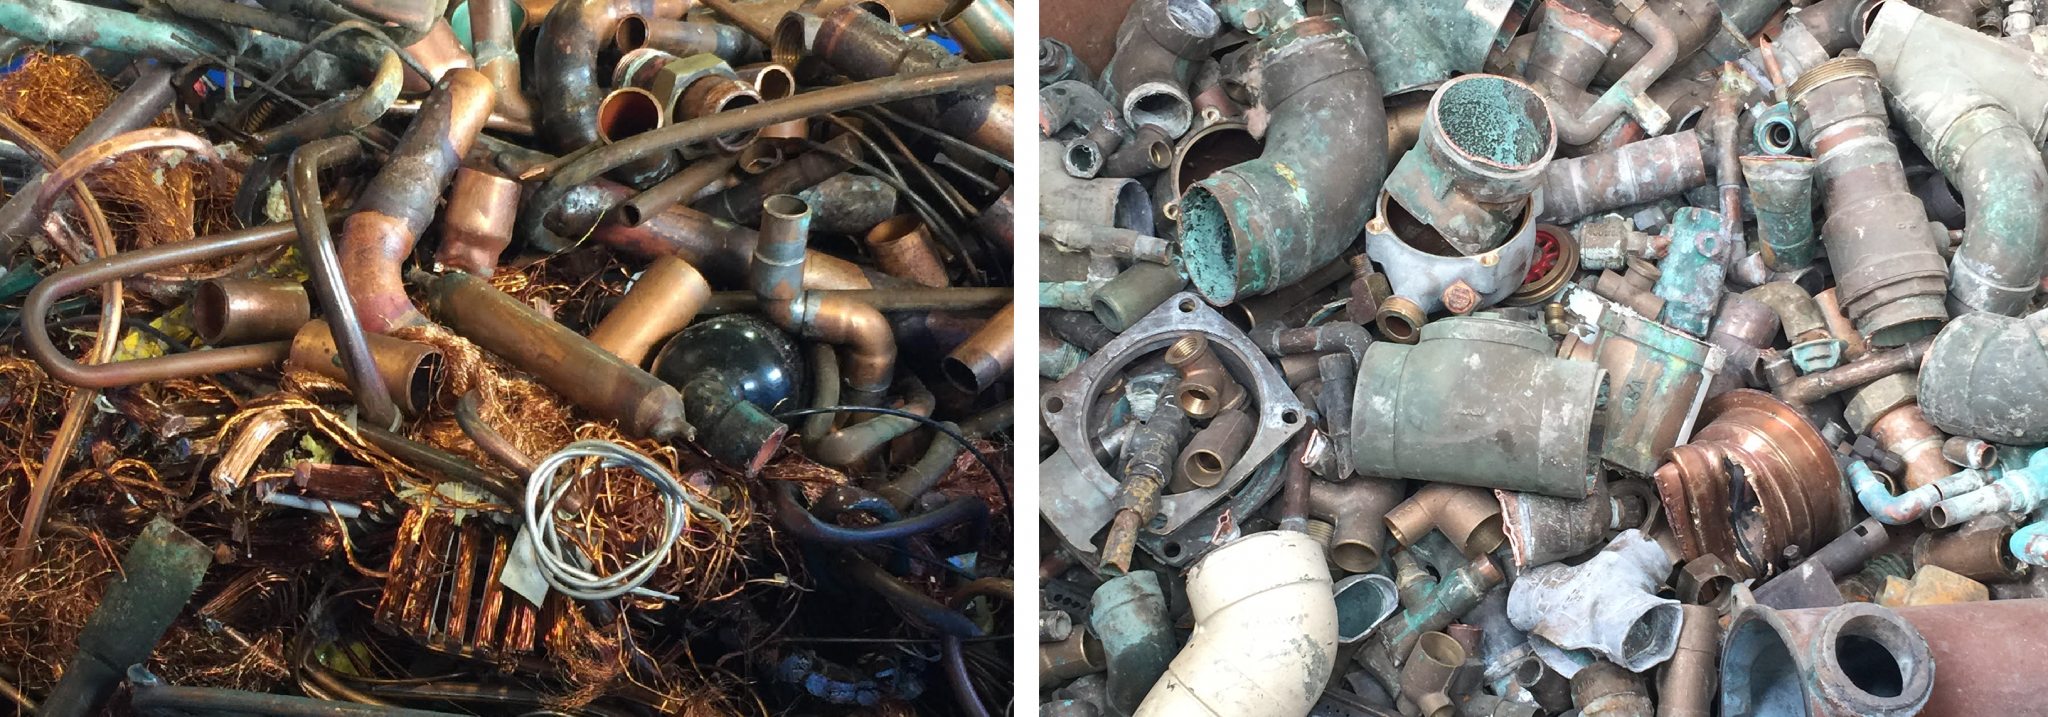 Difference Between Copper & Brass Scrap